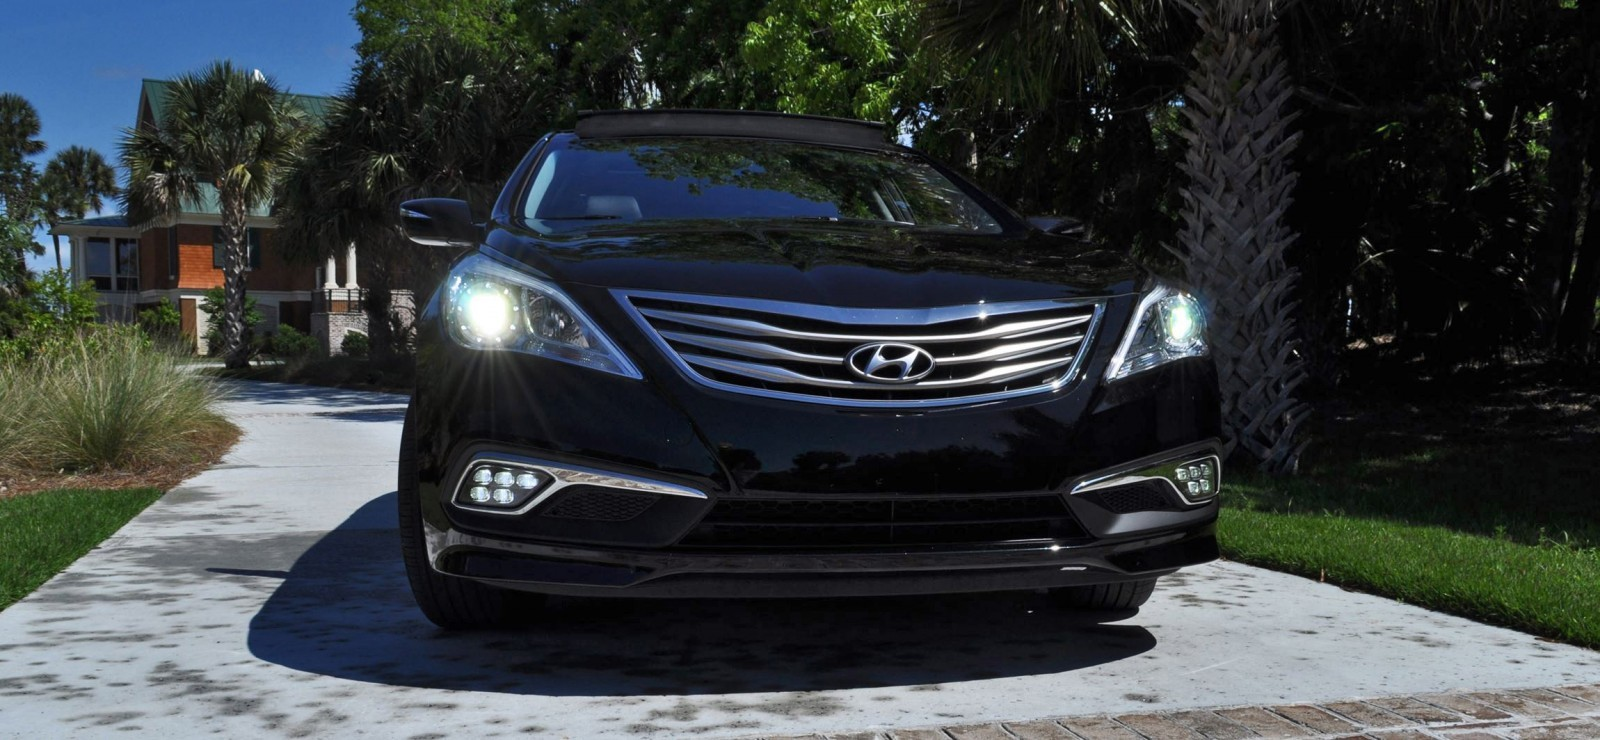 Road Test Review - 2015 Hyundai AZERA Limited 83